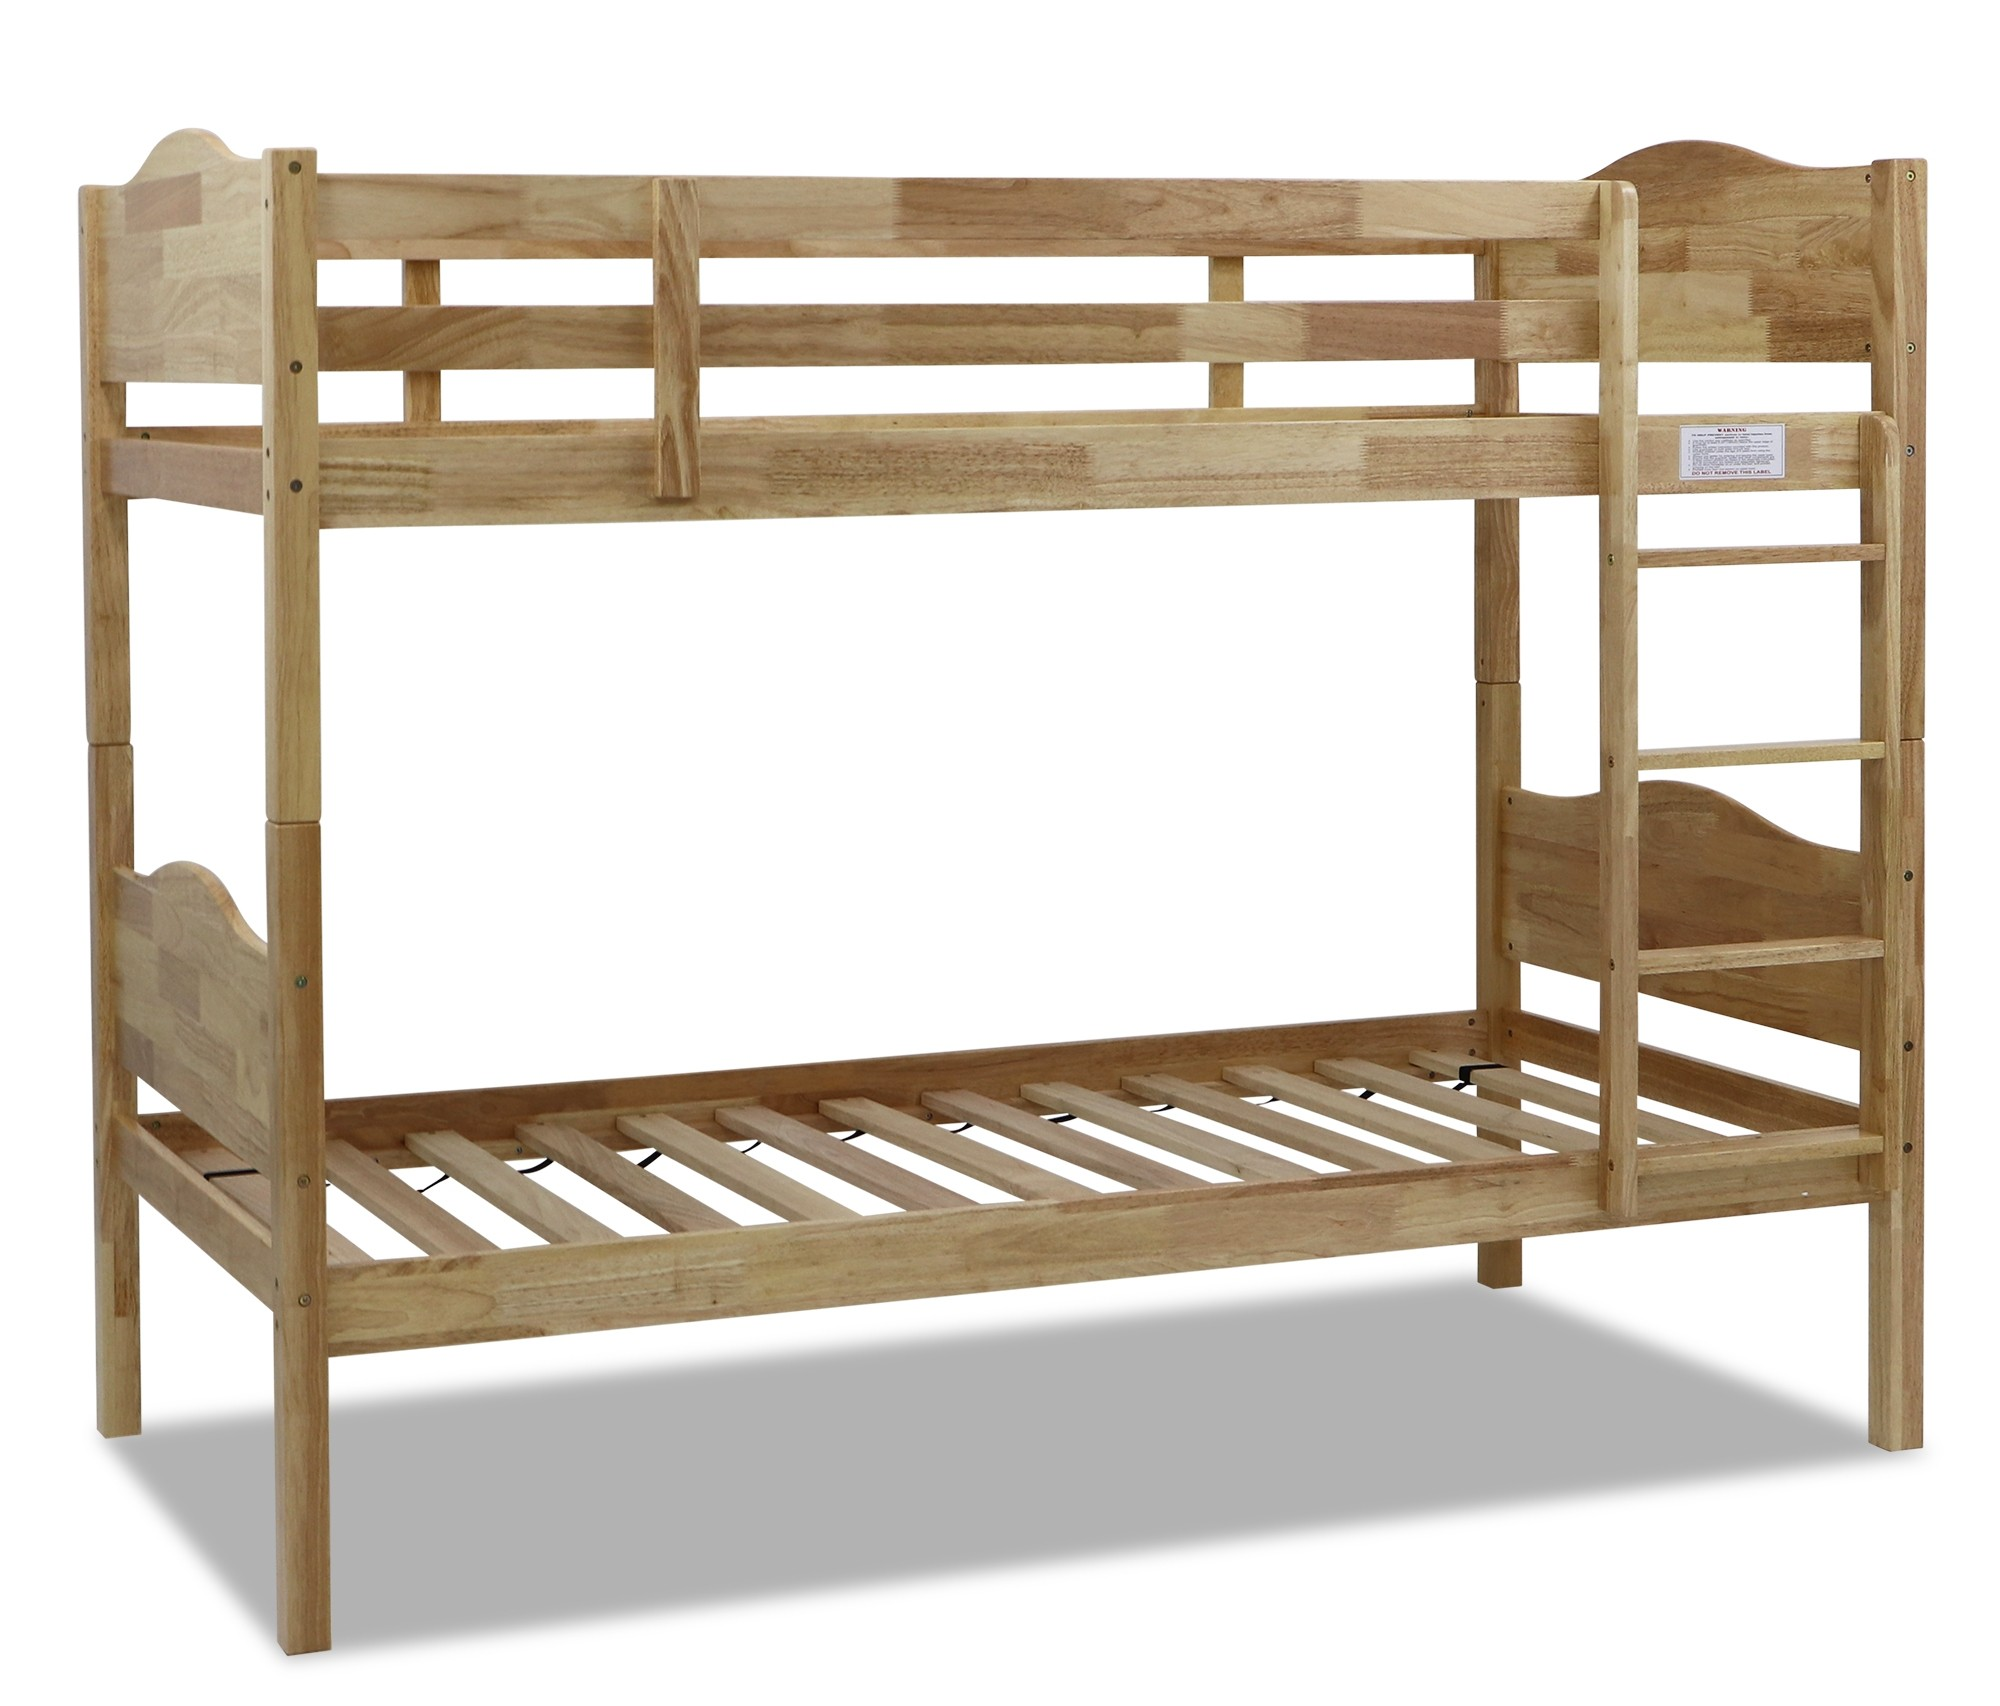 Montana Wooden Bunk Bed Natural Furniture Home Decor Fortytwo